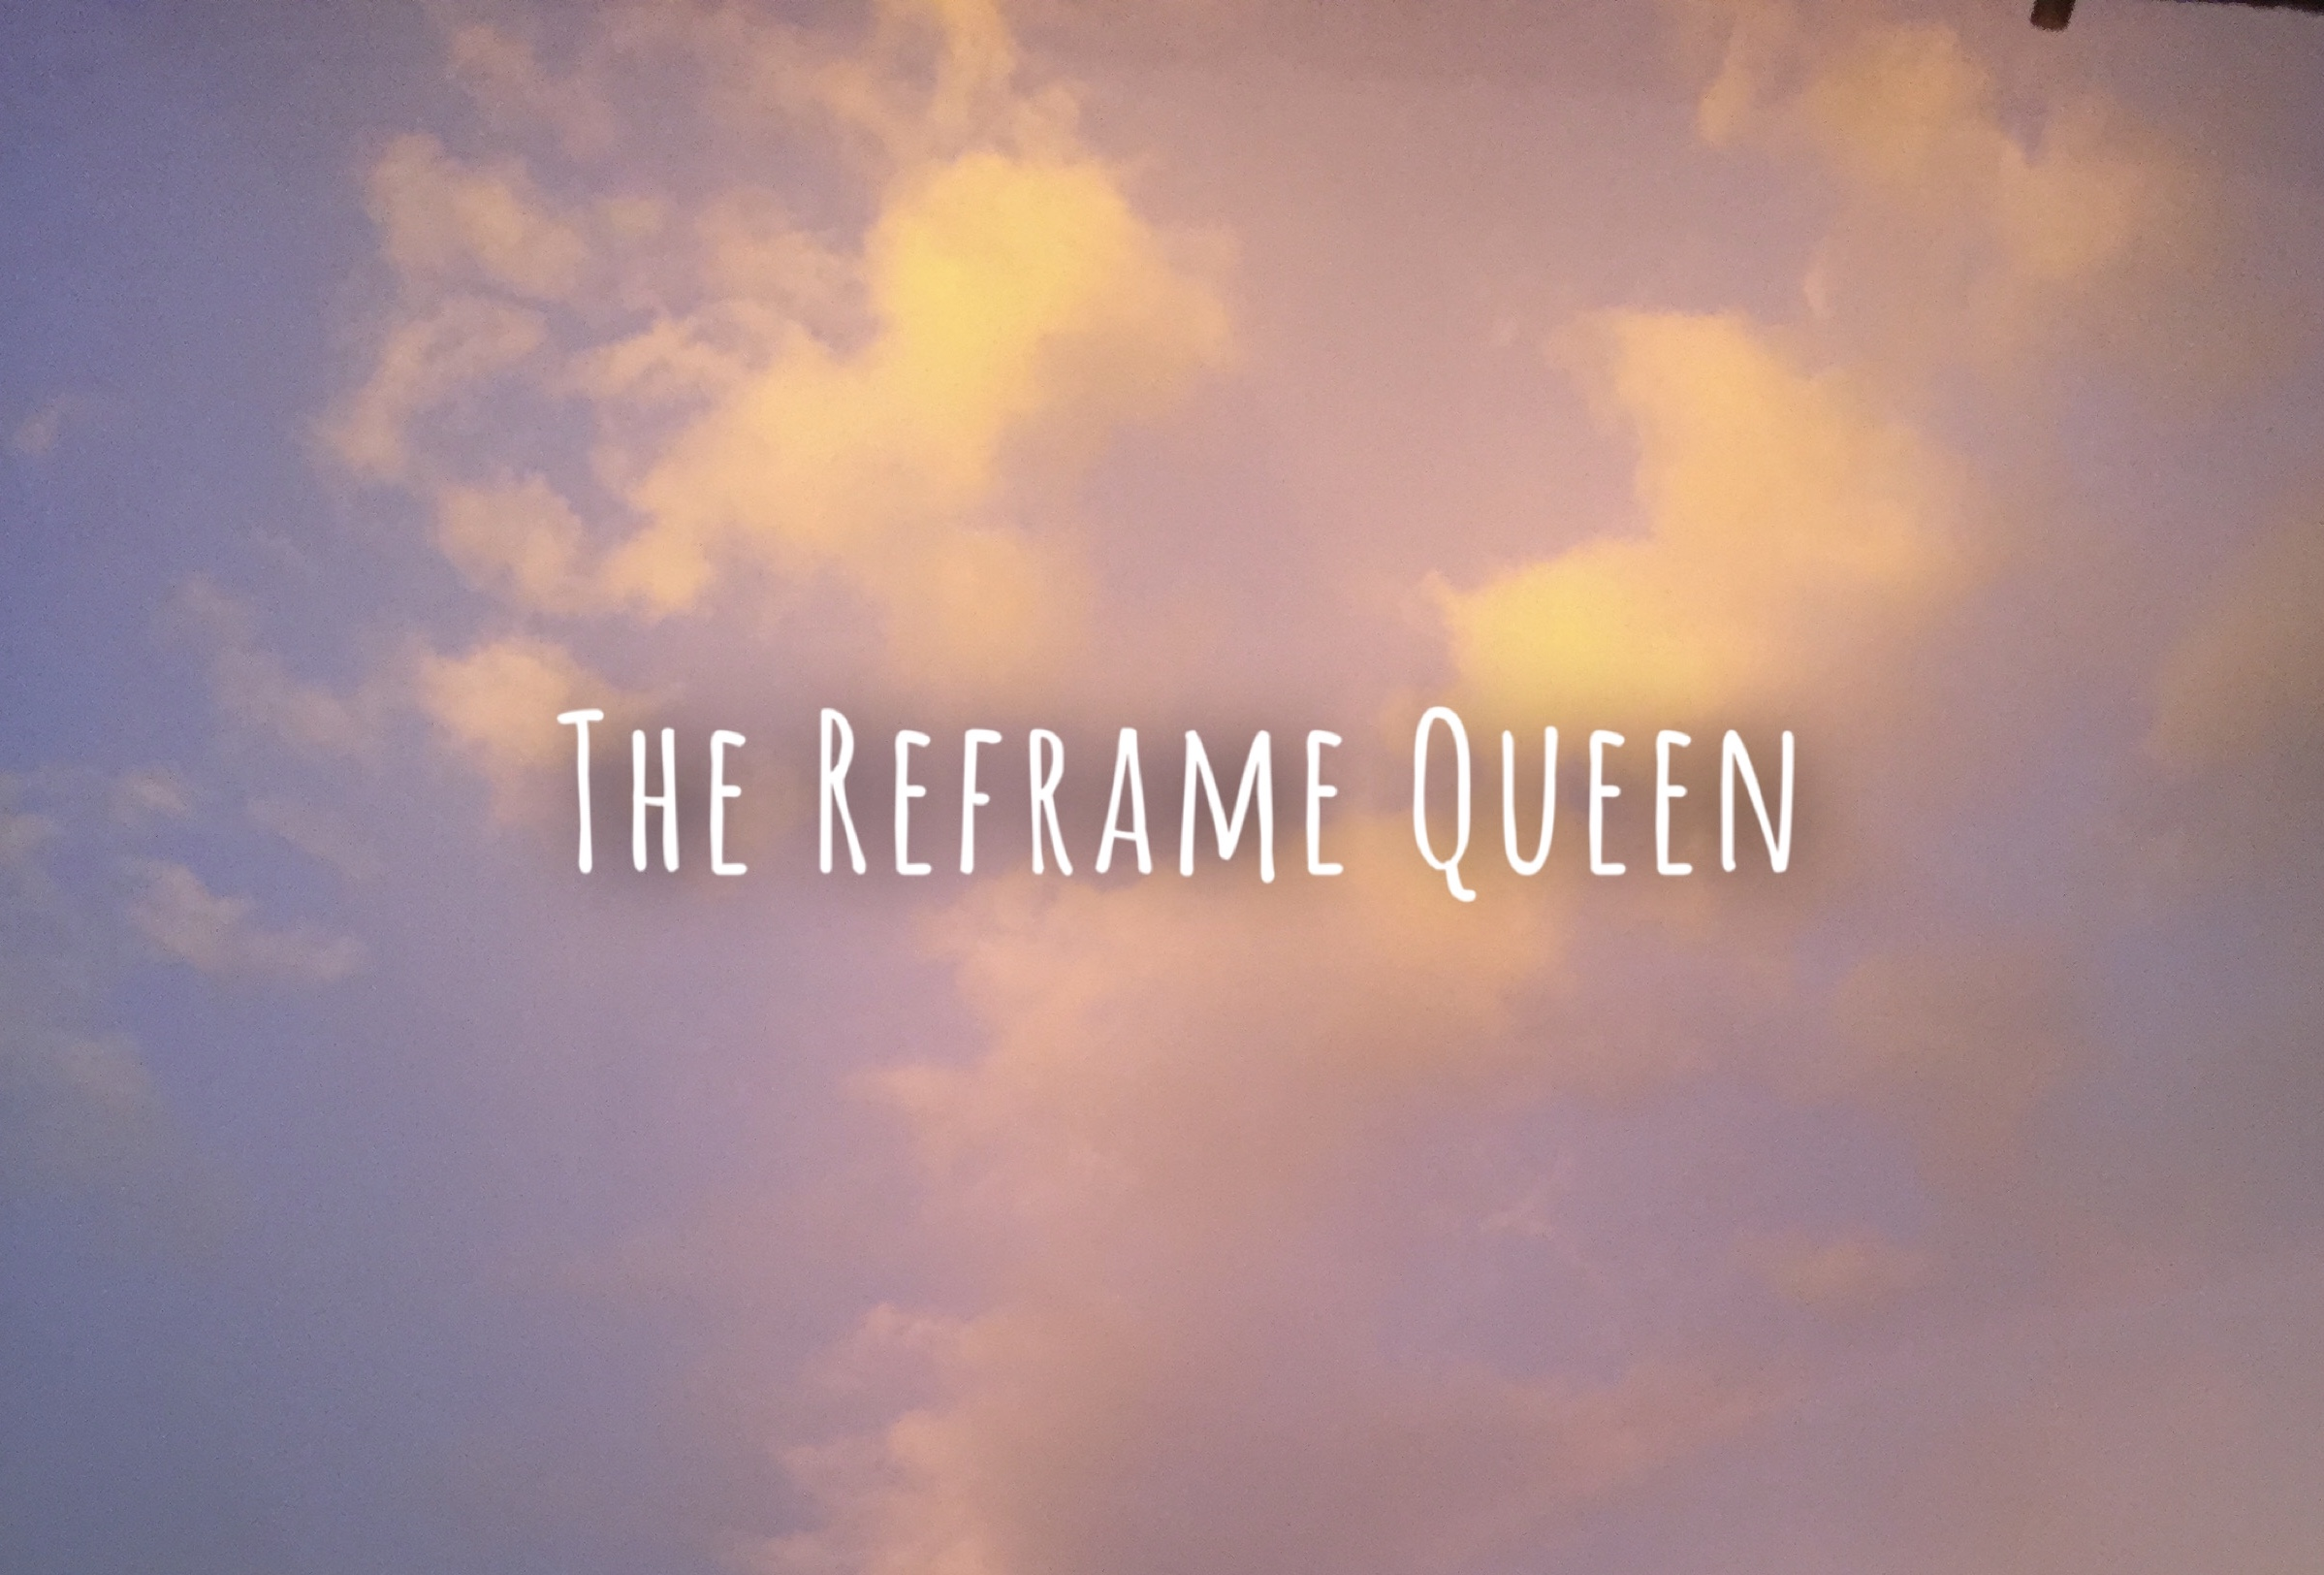 The Reframe Queen Image